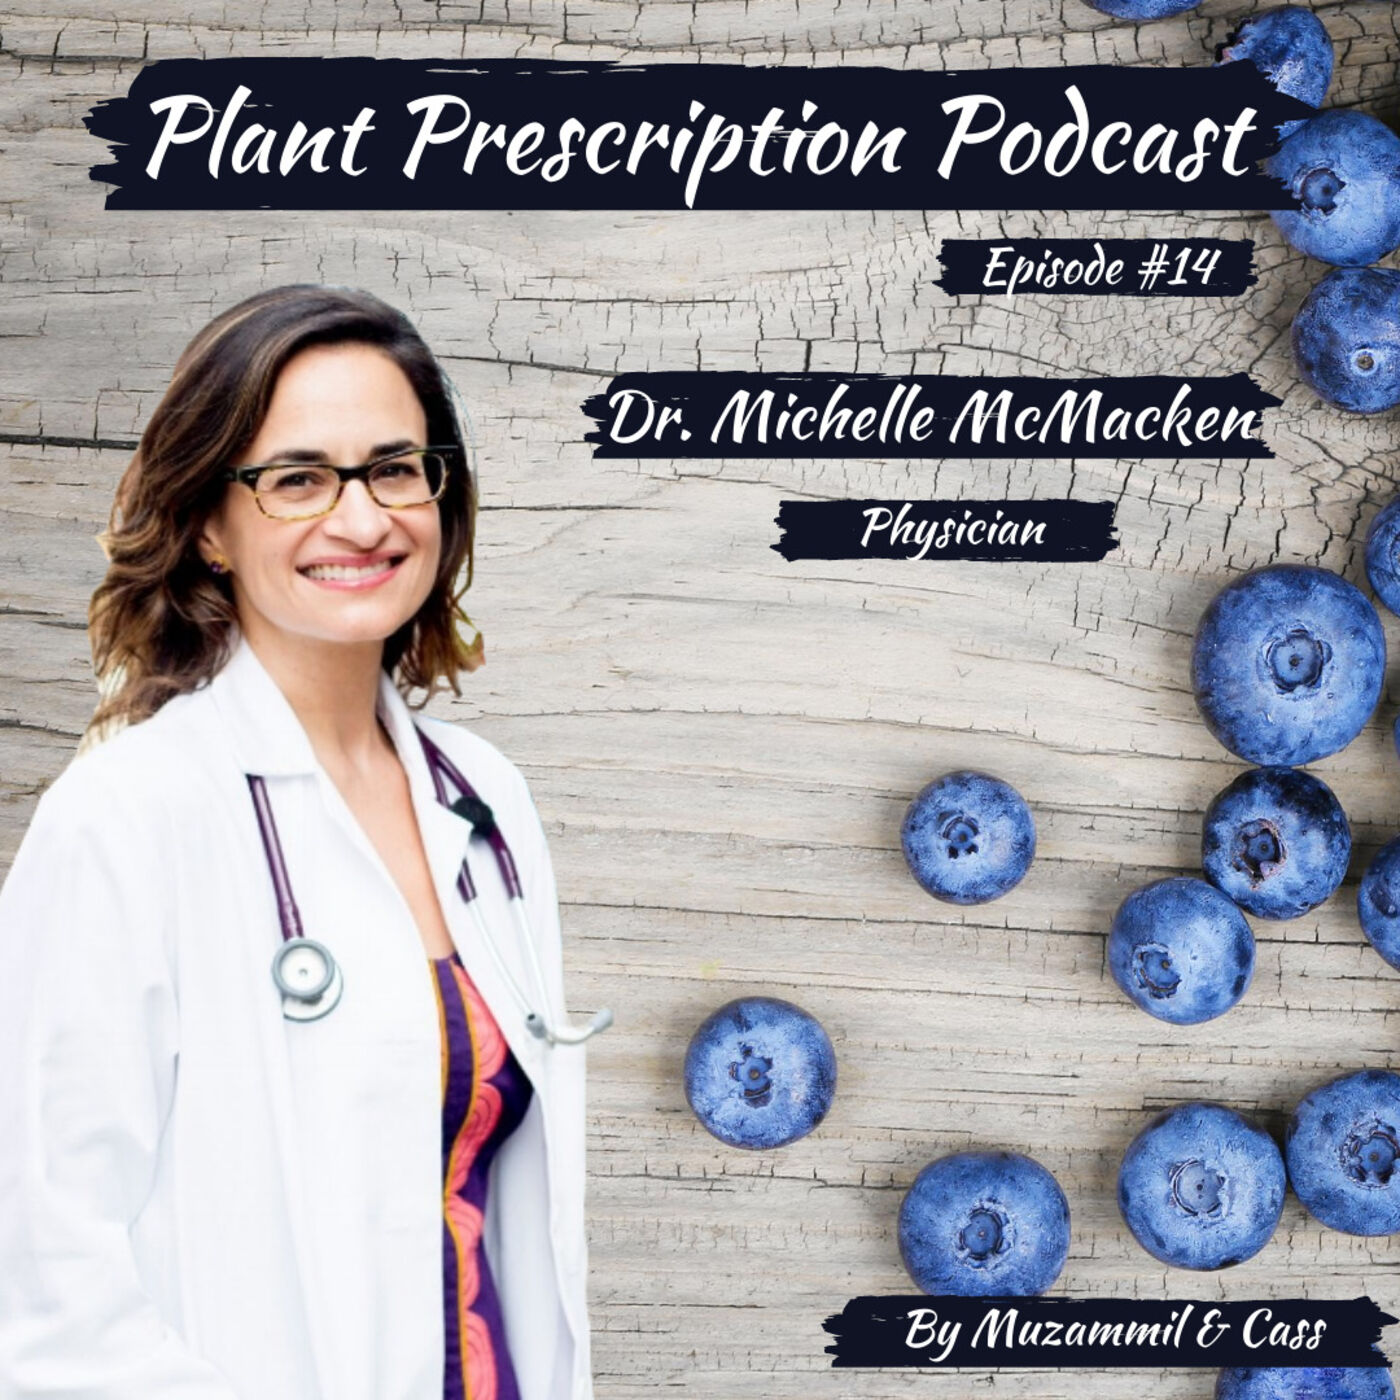 Cholesterol and saturated fat, keeping healthy eating inexpensive, and practicing Lifestyle Medicine with Dr. Michelle McMacken